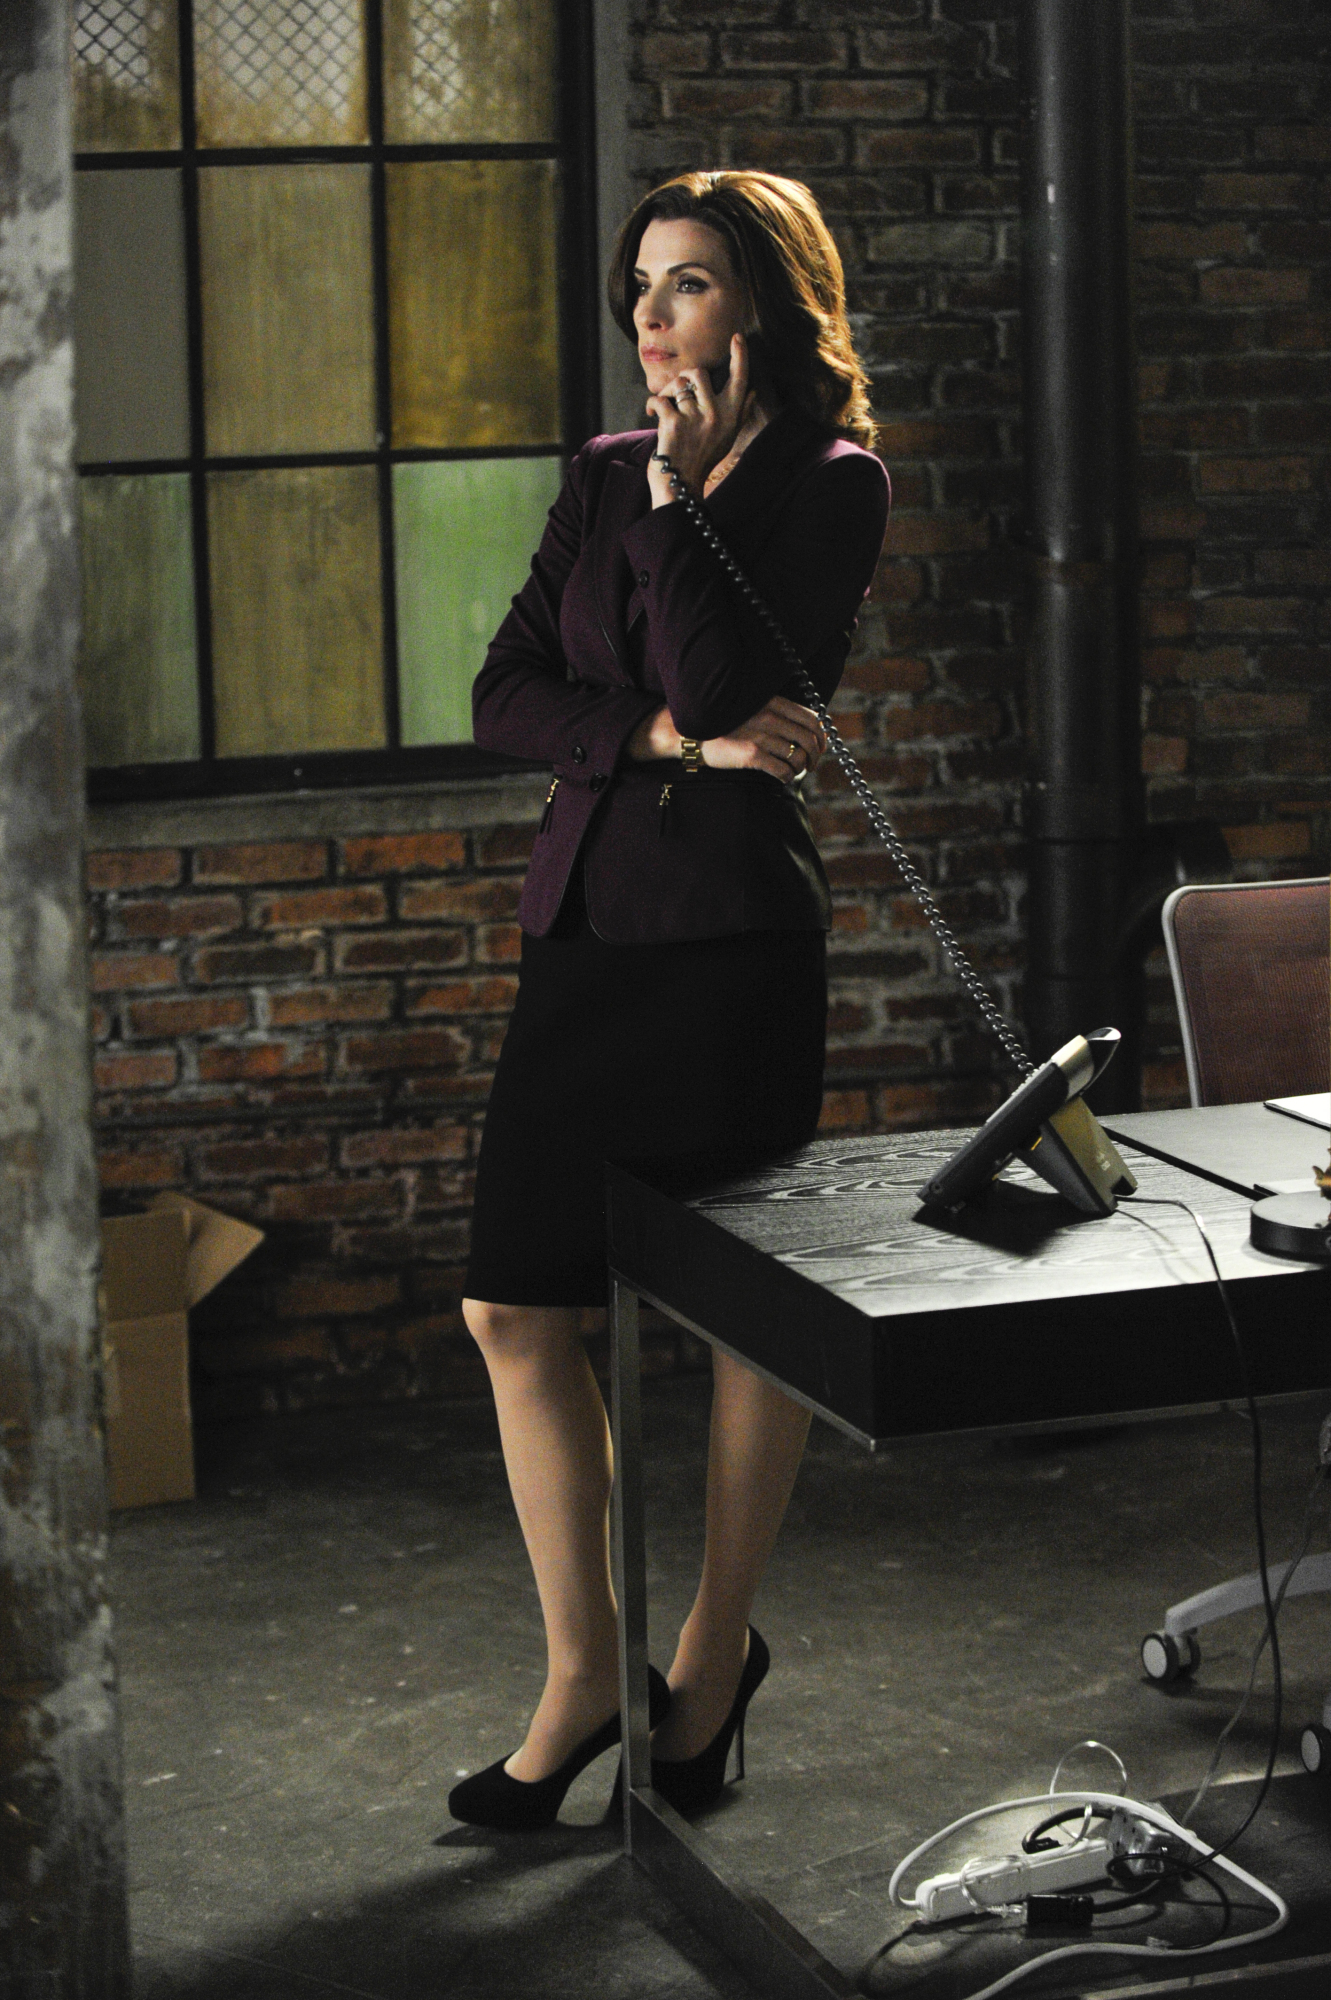 7. Alicia's New Office May Be A Bit of A Mess, But Her Wardrobe Never Is